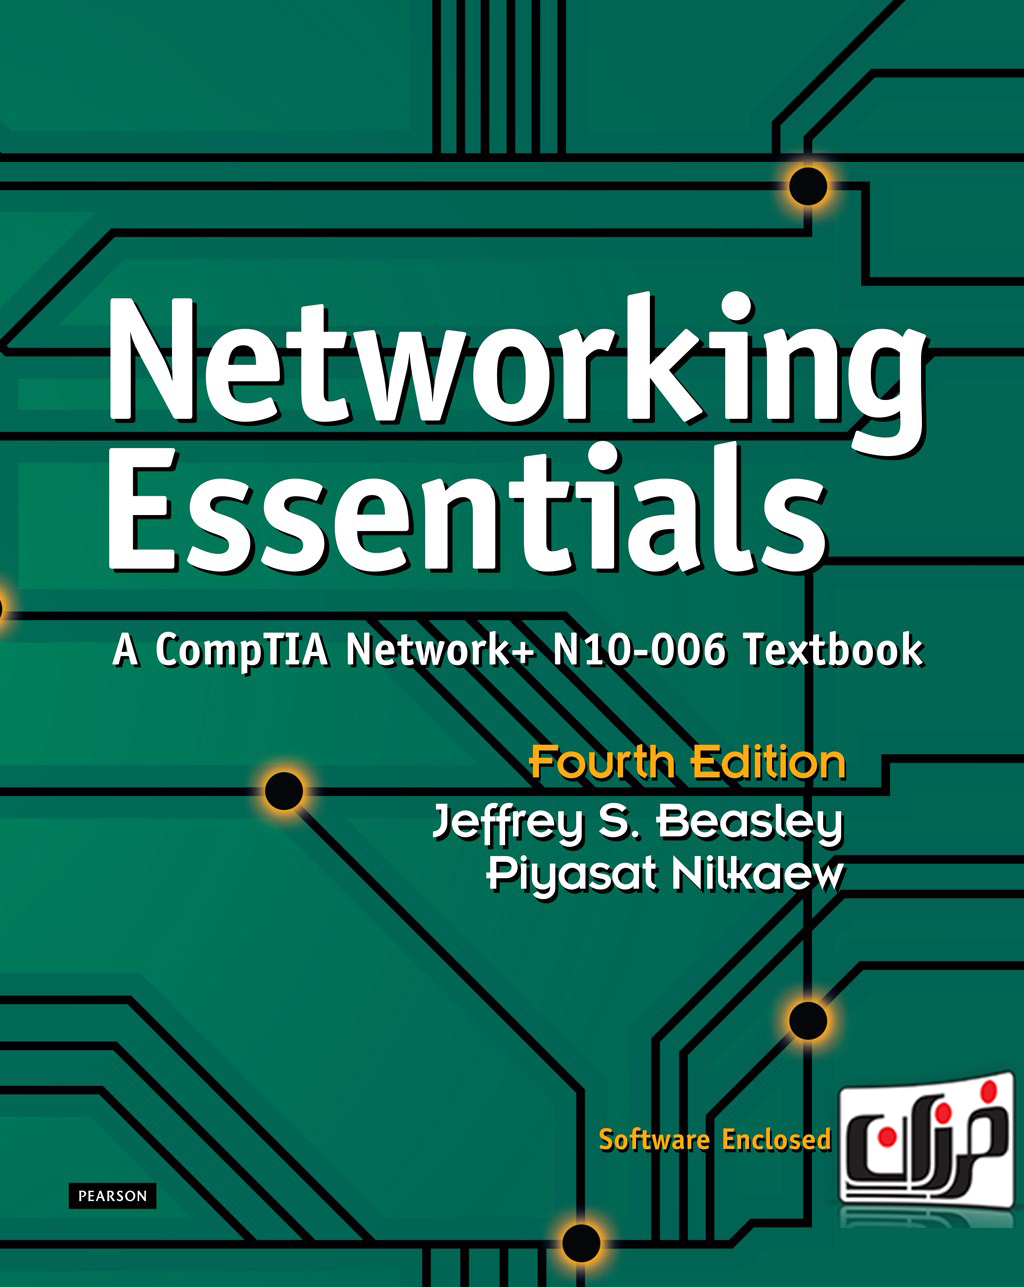 دانلود کتاب Networking Essentials: A CompTIA Network+ N10-006 Textbook, 4th Edition